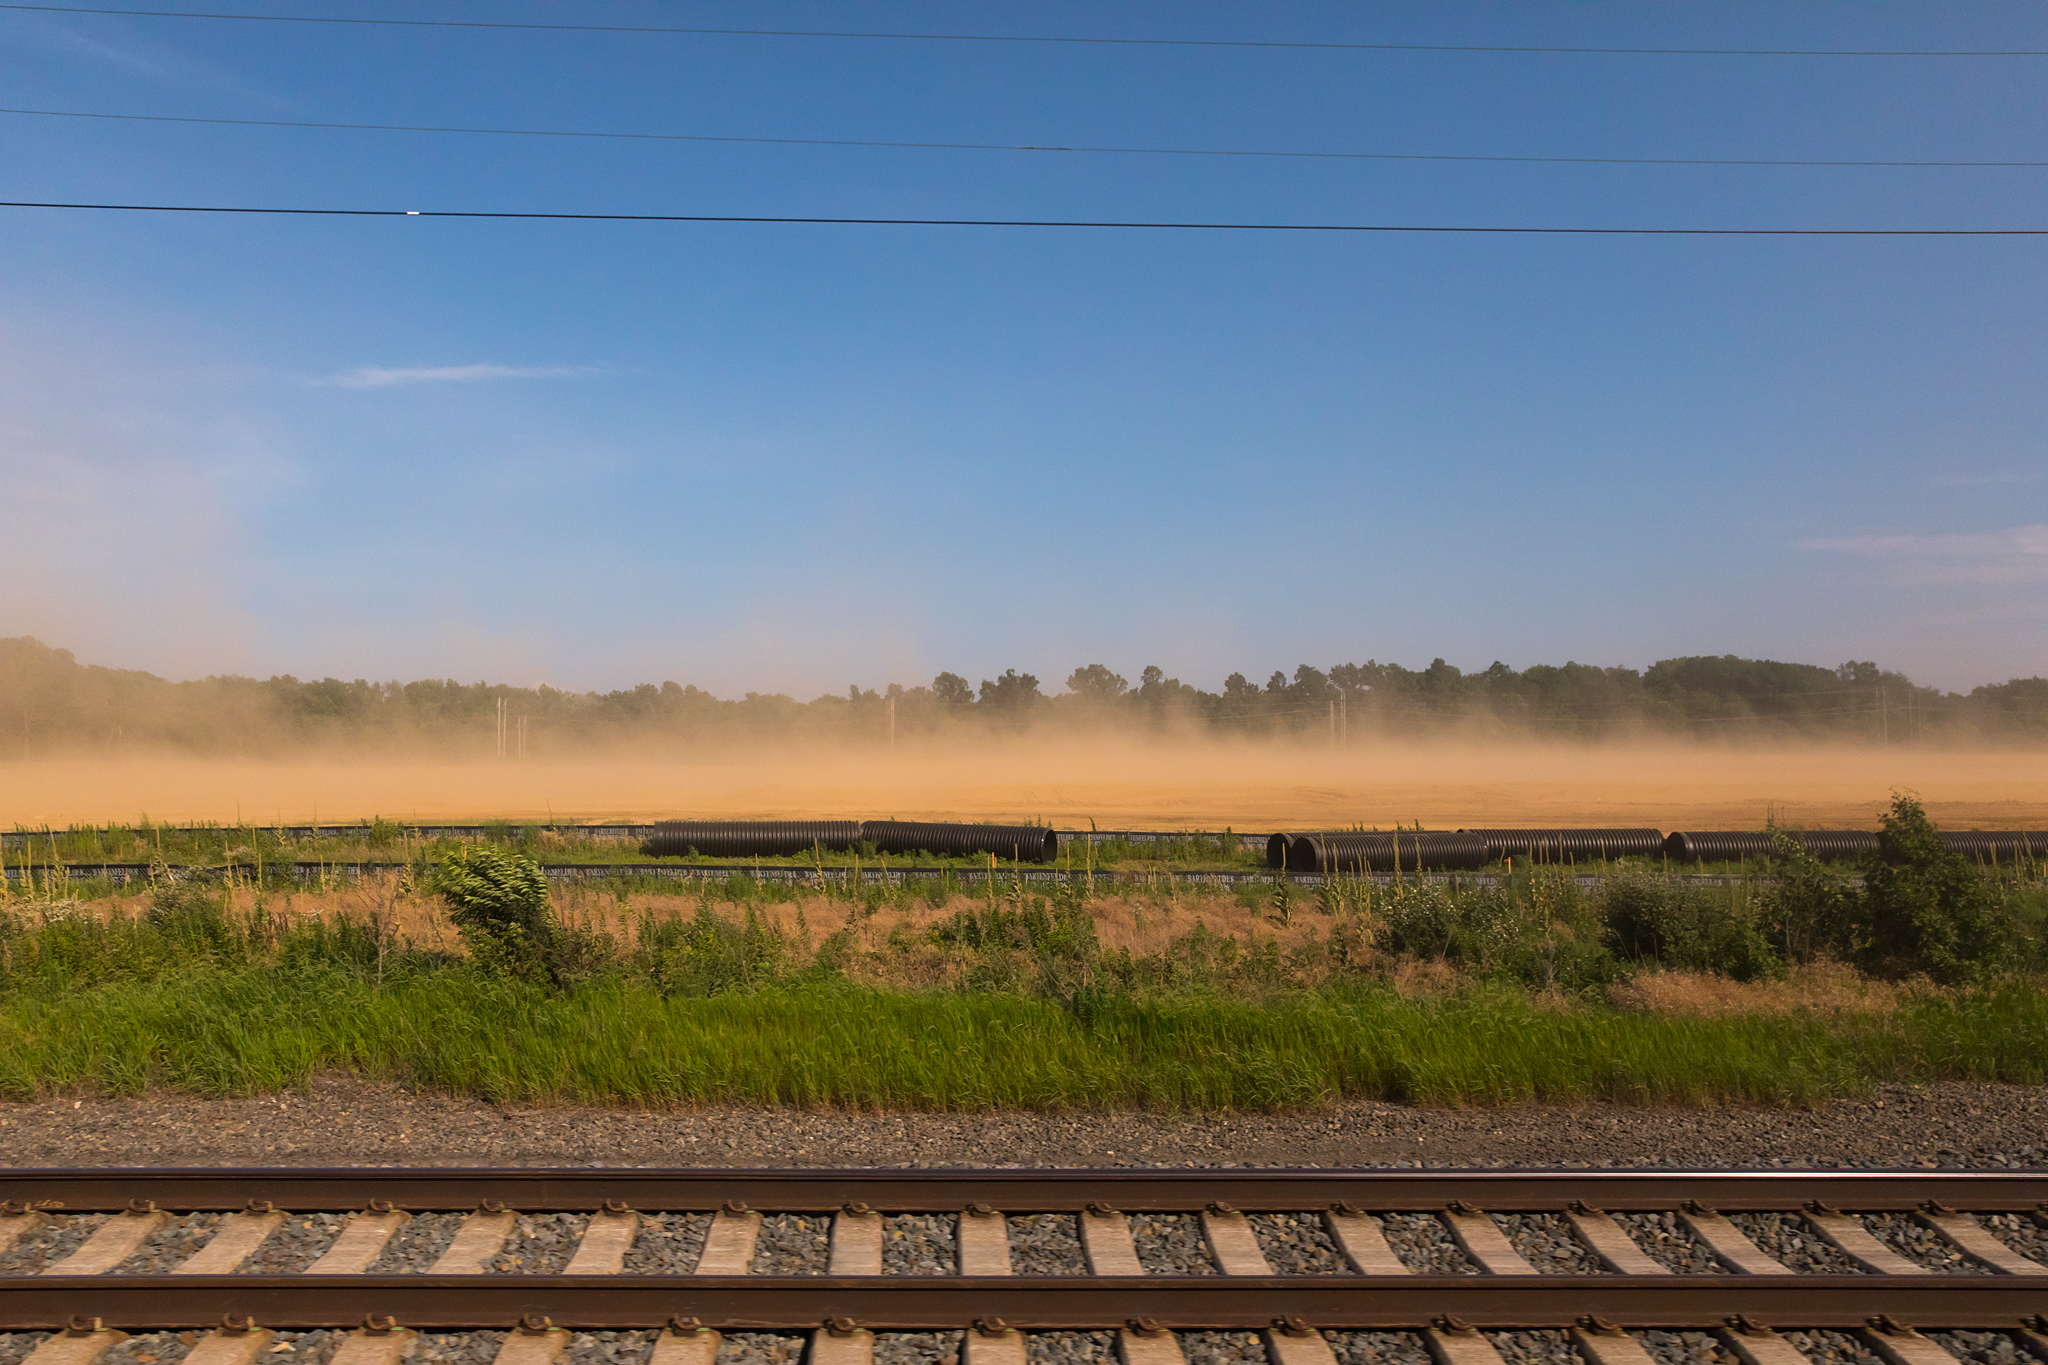 Dust Storm at Construction Site - Perryman, MD - 6.30.2017 - NYP-WAS